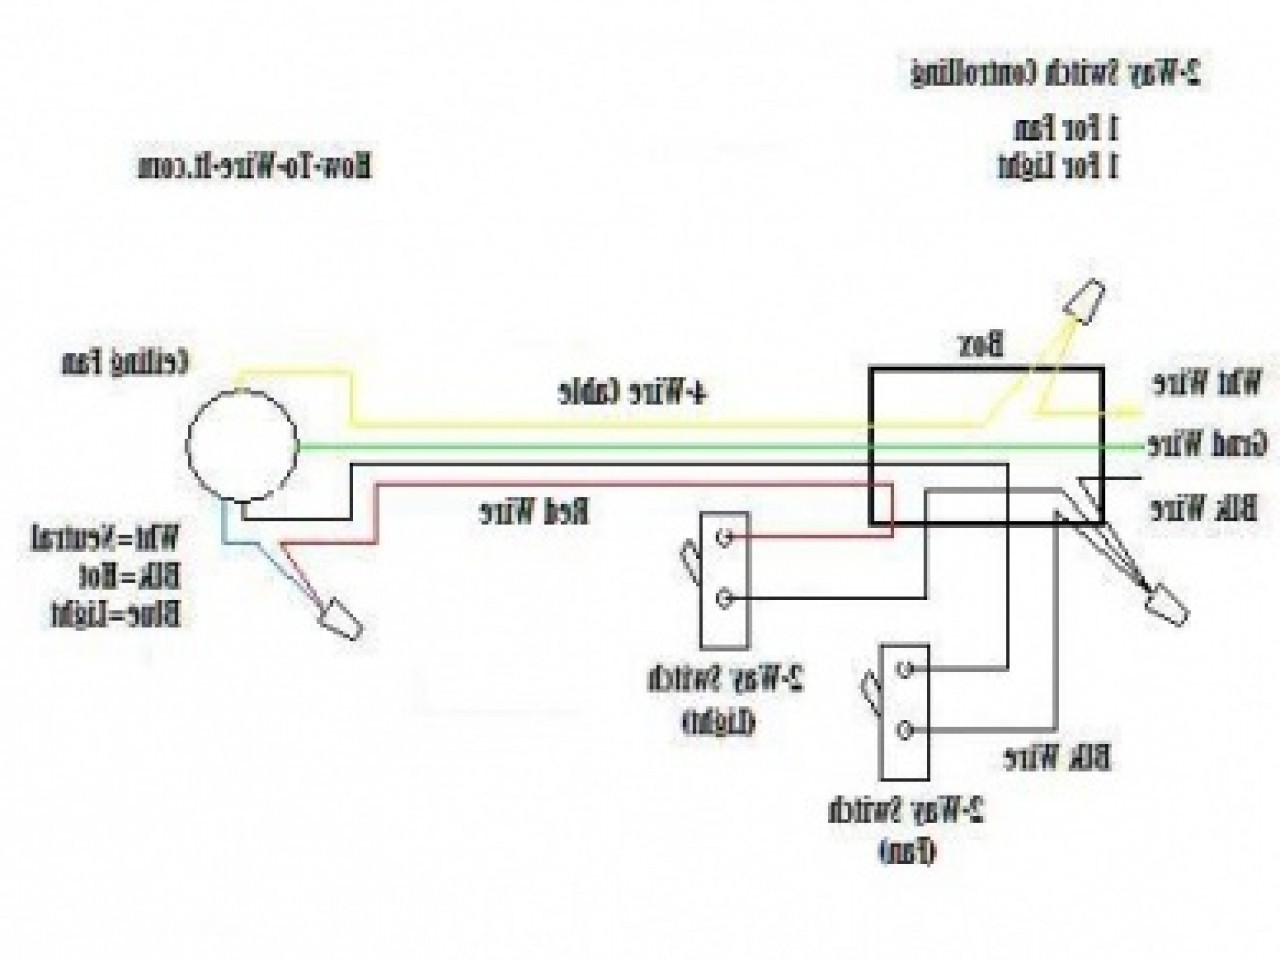 cbb61 fan capacitor wiring diagram telect fuse panel 5 wire ceiling